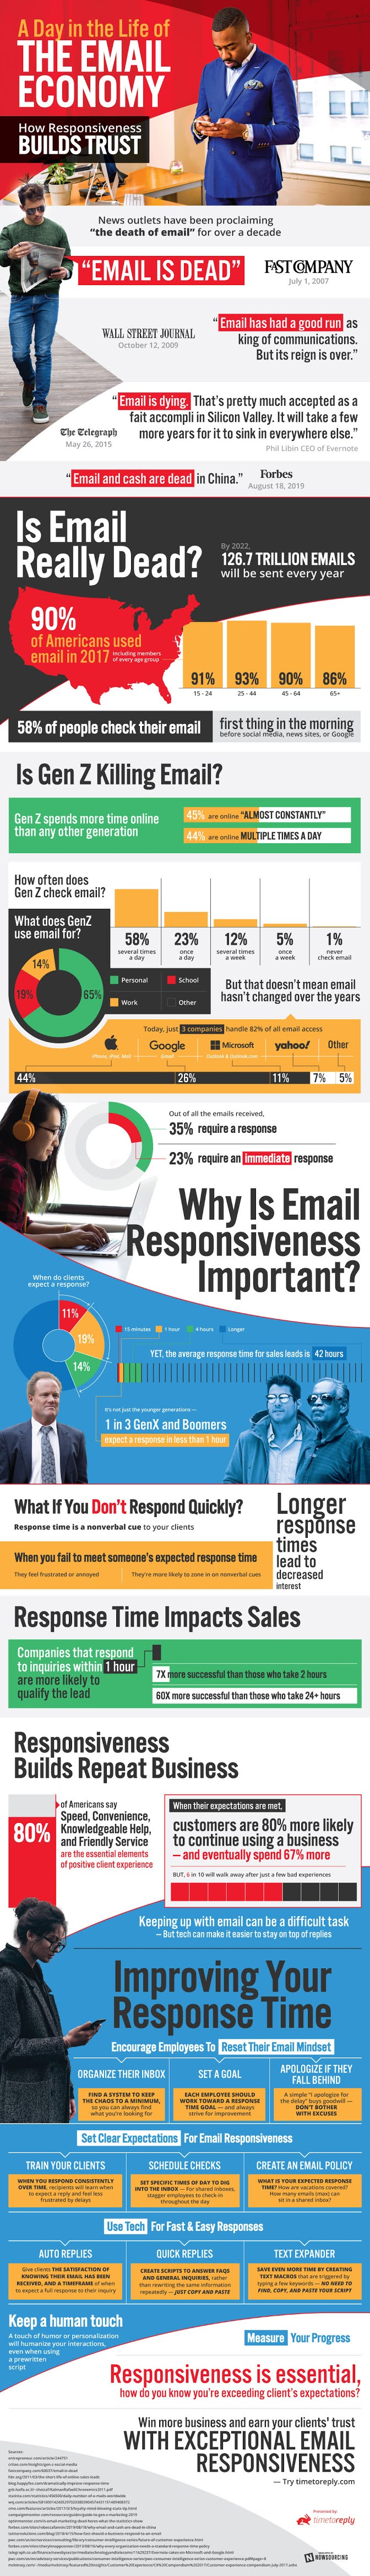 A Day in the Life of the Email Economy #infographic #Economy #infographics #Email Economy